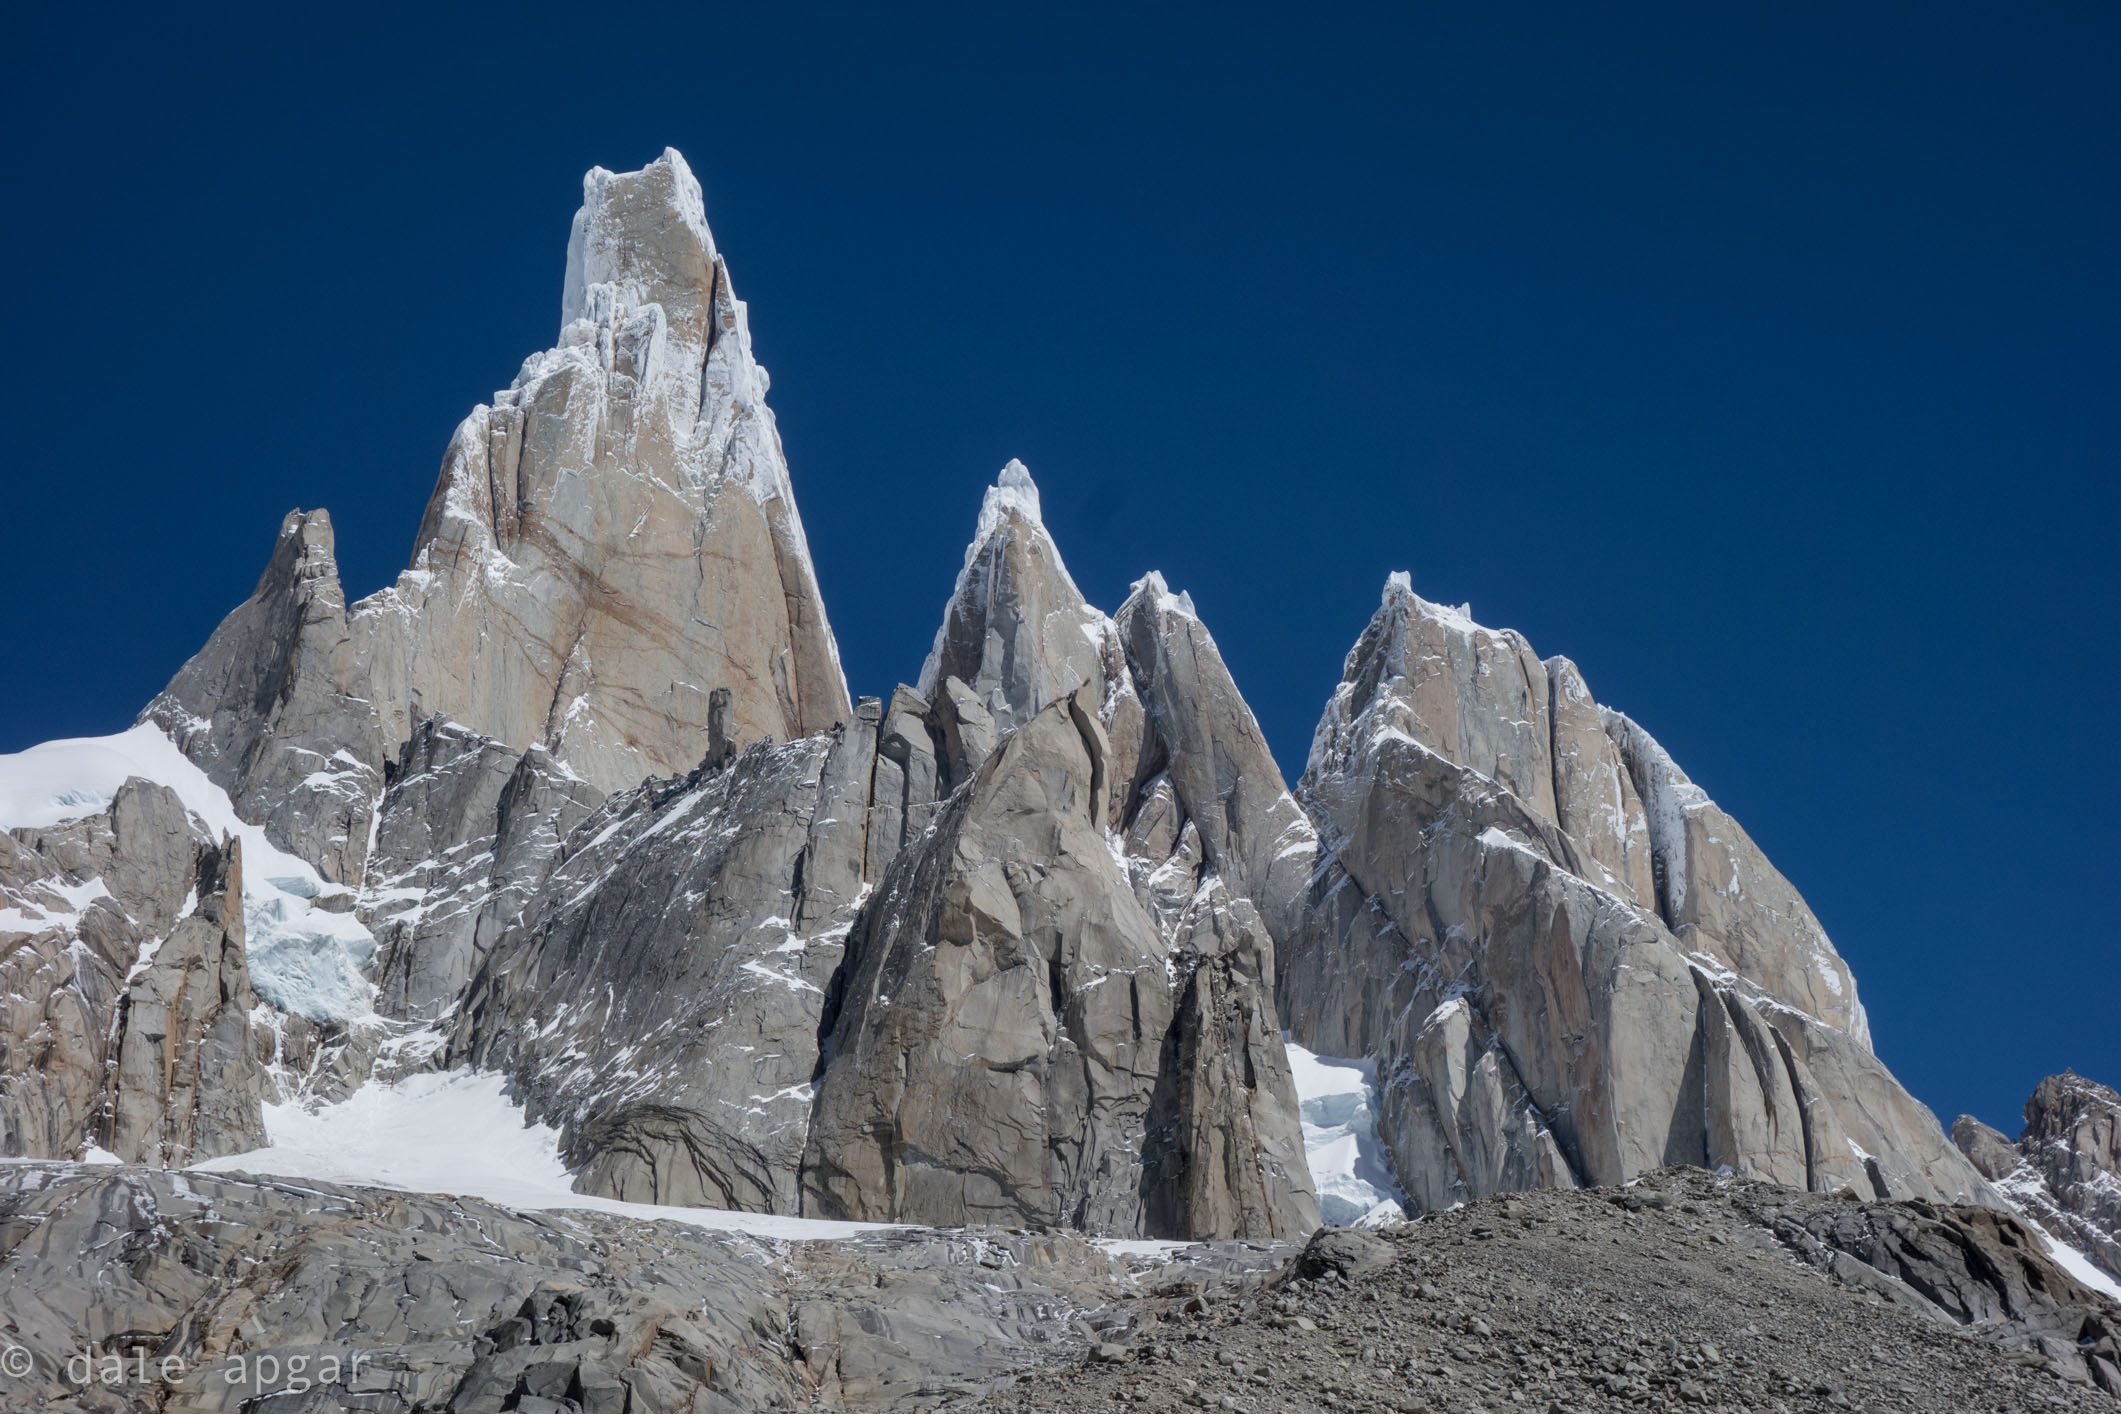 Up close and personal with the Torre Massif